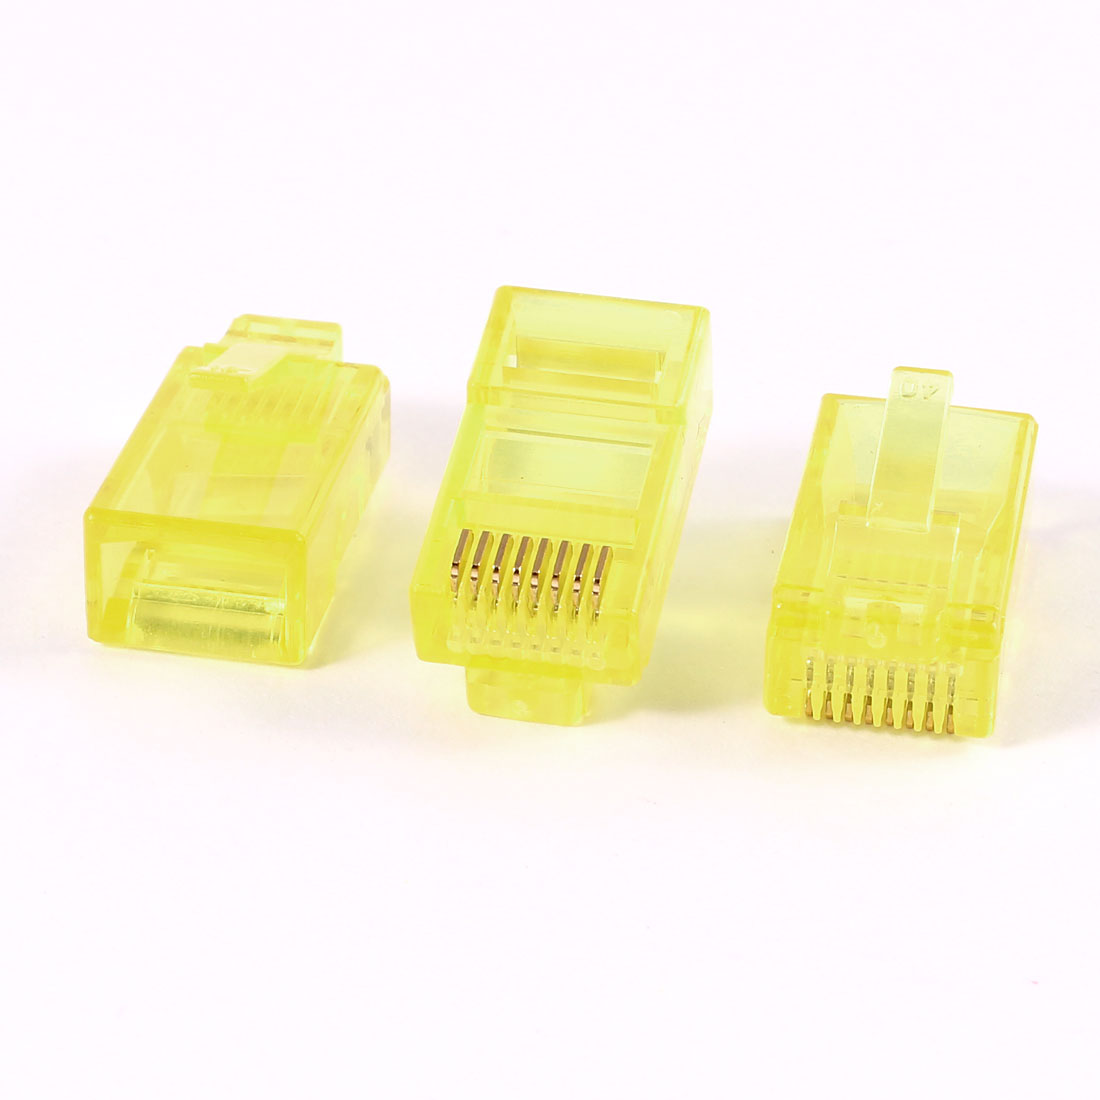 3 Pcs Yellow Plastic Shell RJ45 8P8C Modular Jack End Network Connector